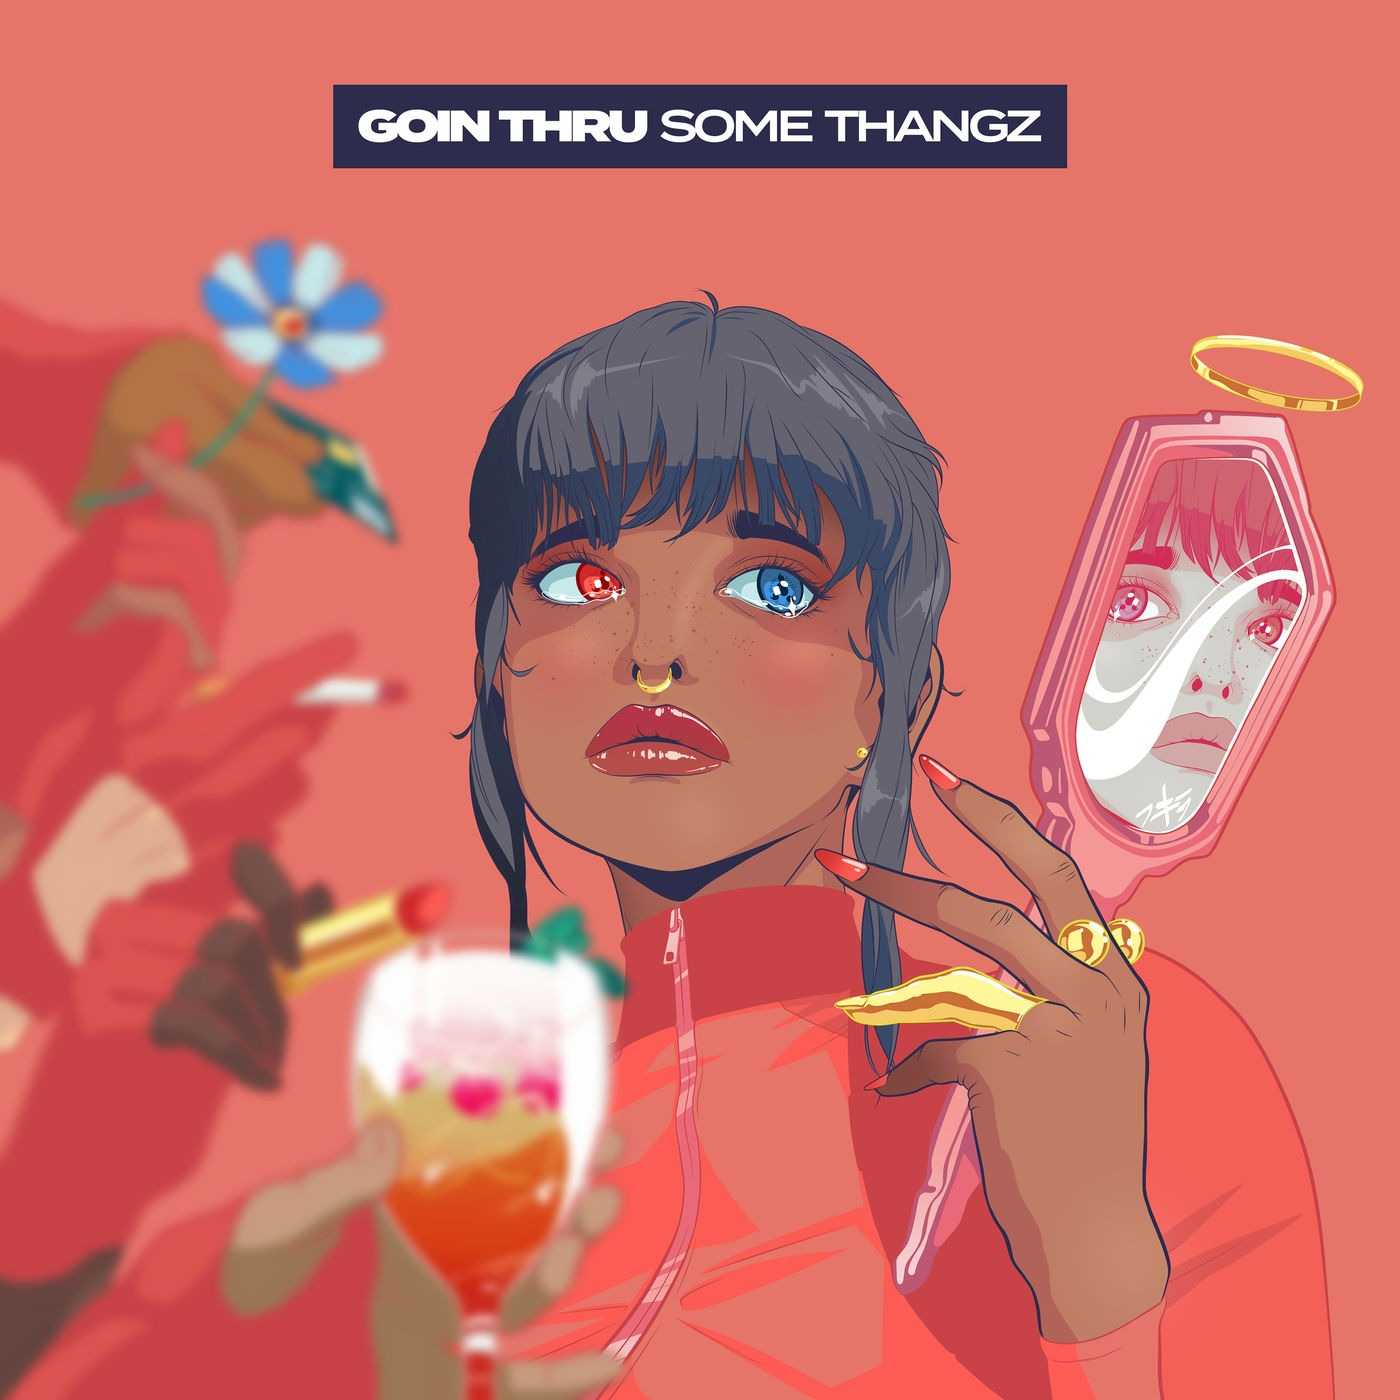 MihTy, Jeremih & Ty Dolla $ign | Goin Thru Some Thangz [Audio]